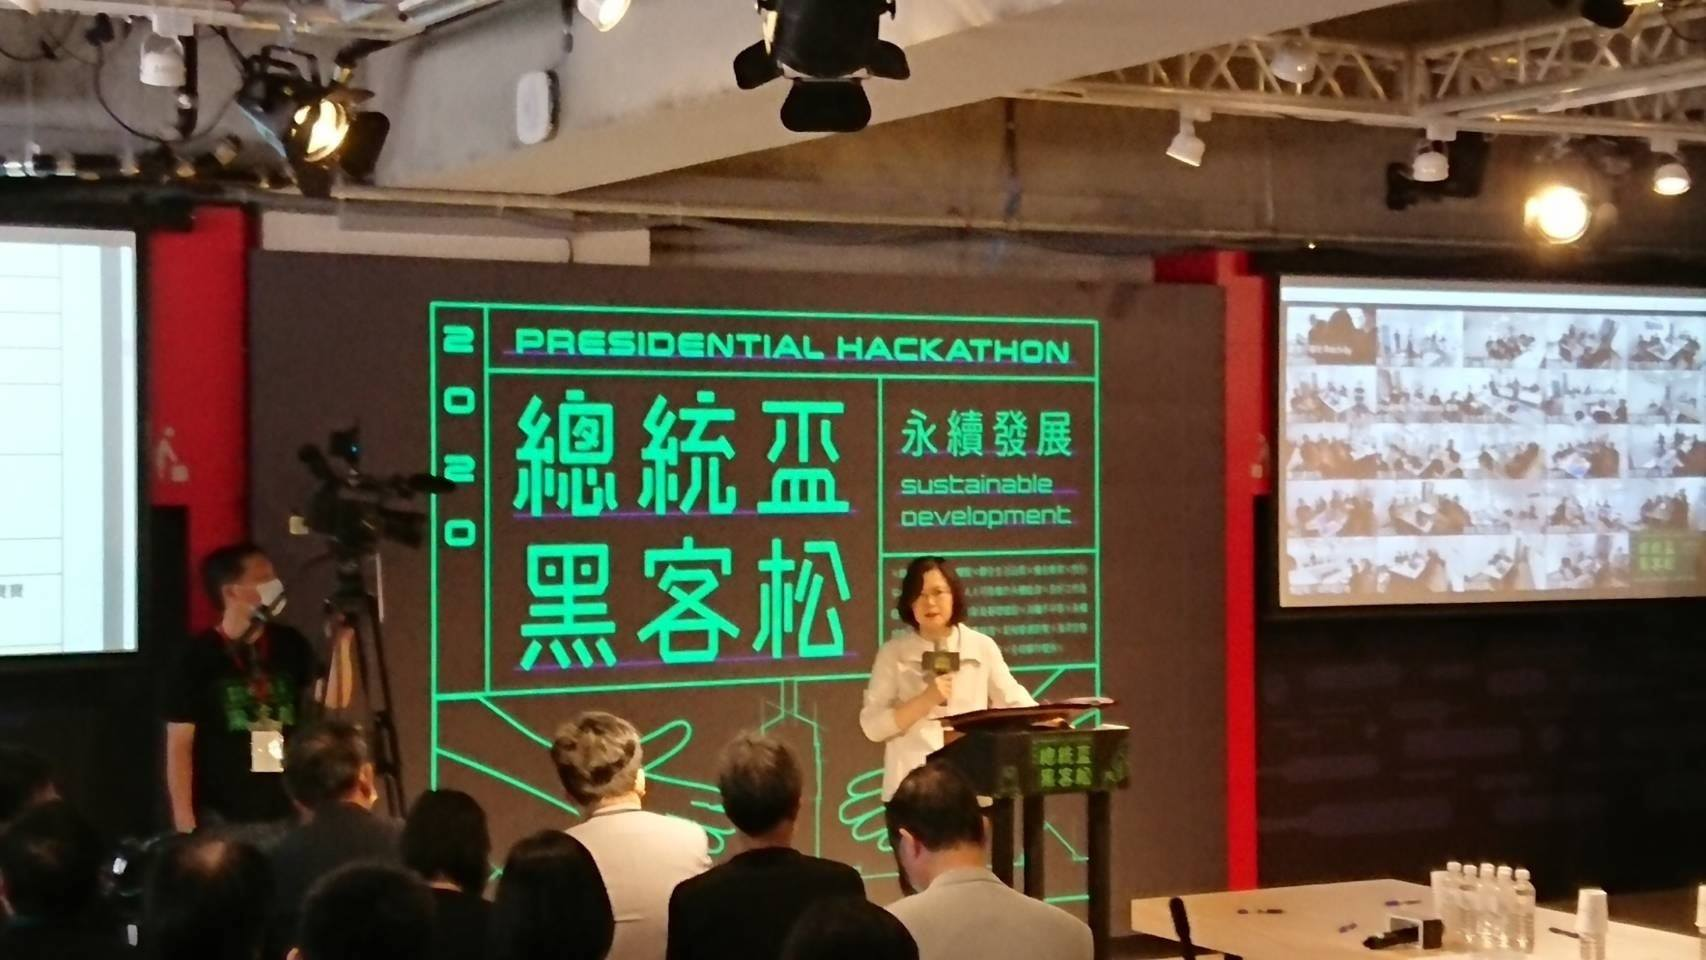 The first workshop of the 2020 Presidential Hackathon